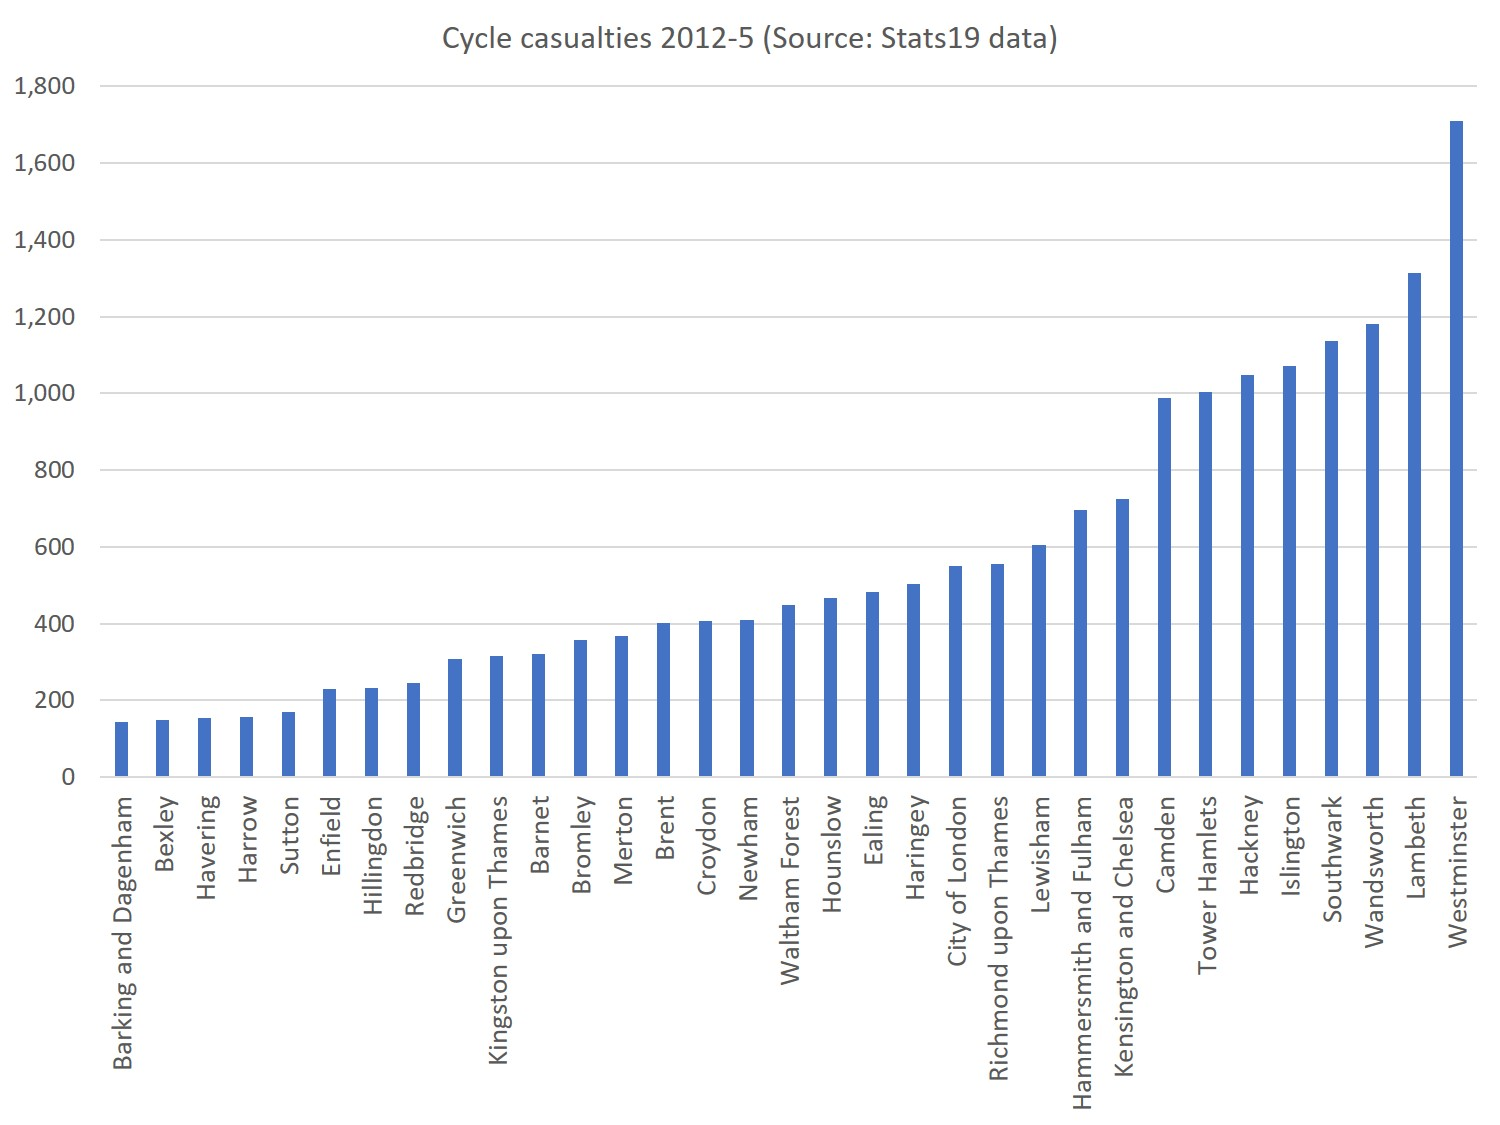 Cyclists injured in collisions in London, 2012-5